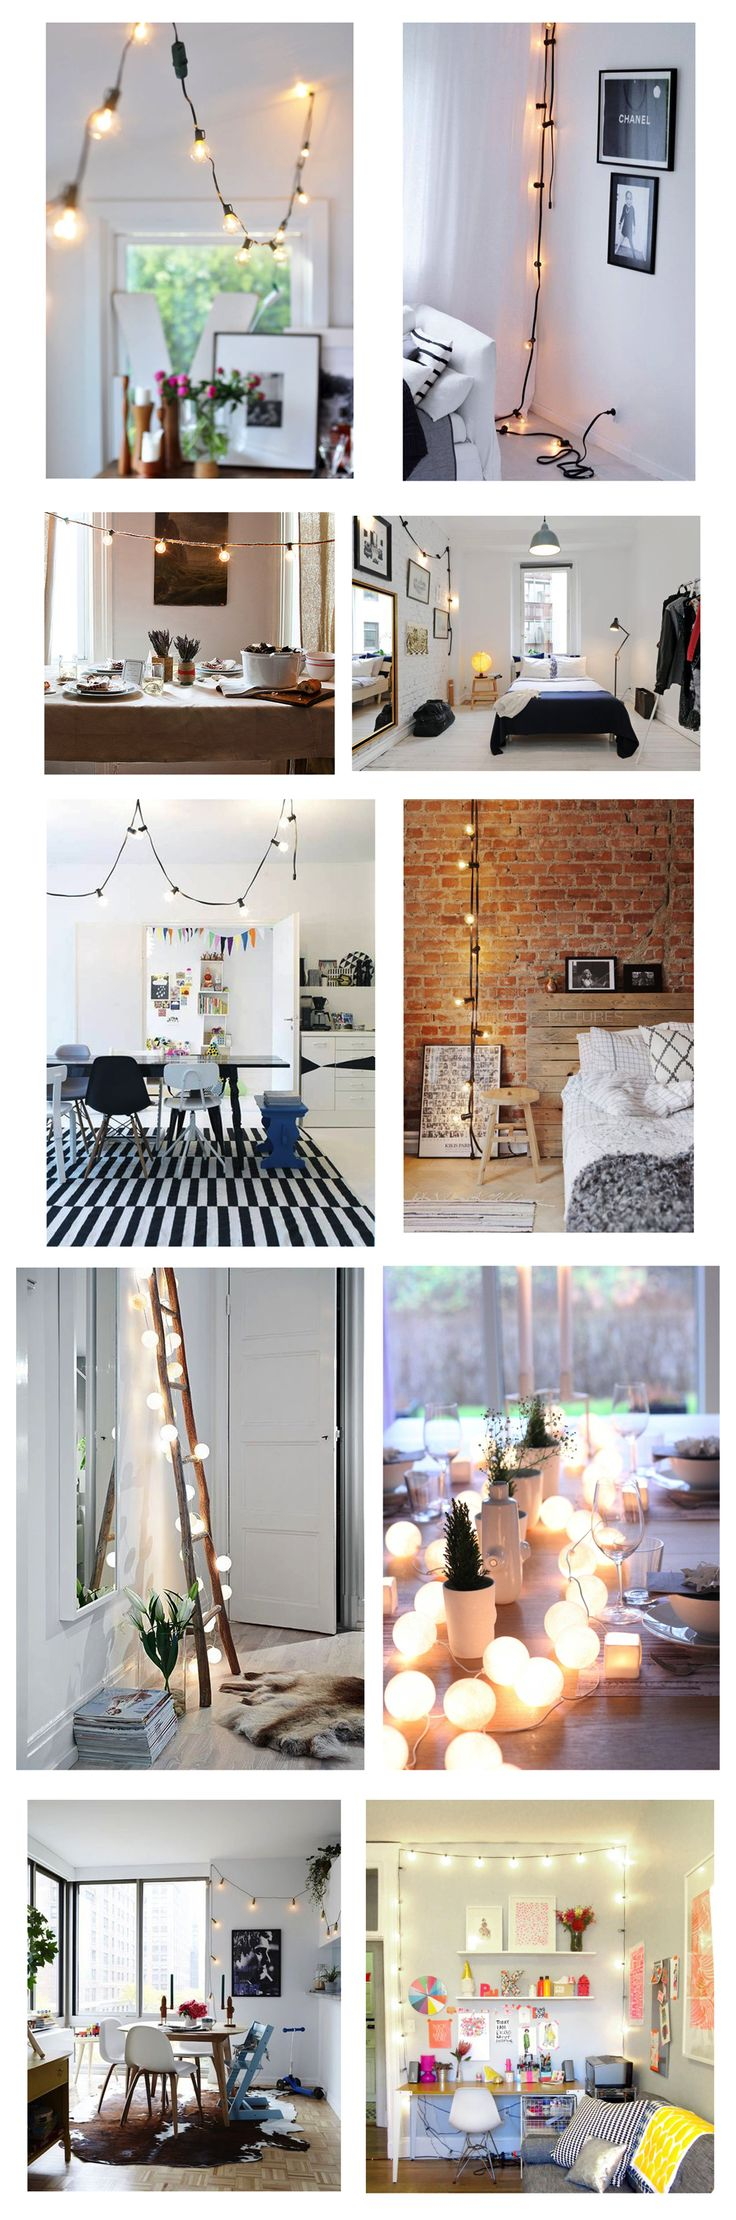 Best 25 indoor string lights ideas on pinterest rack of lamp image string lights and timers - How to use lights to decorate your patio ...